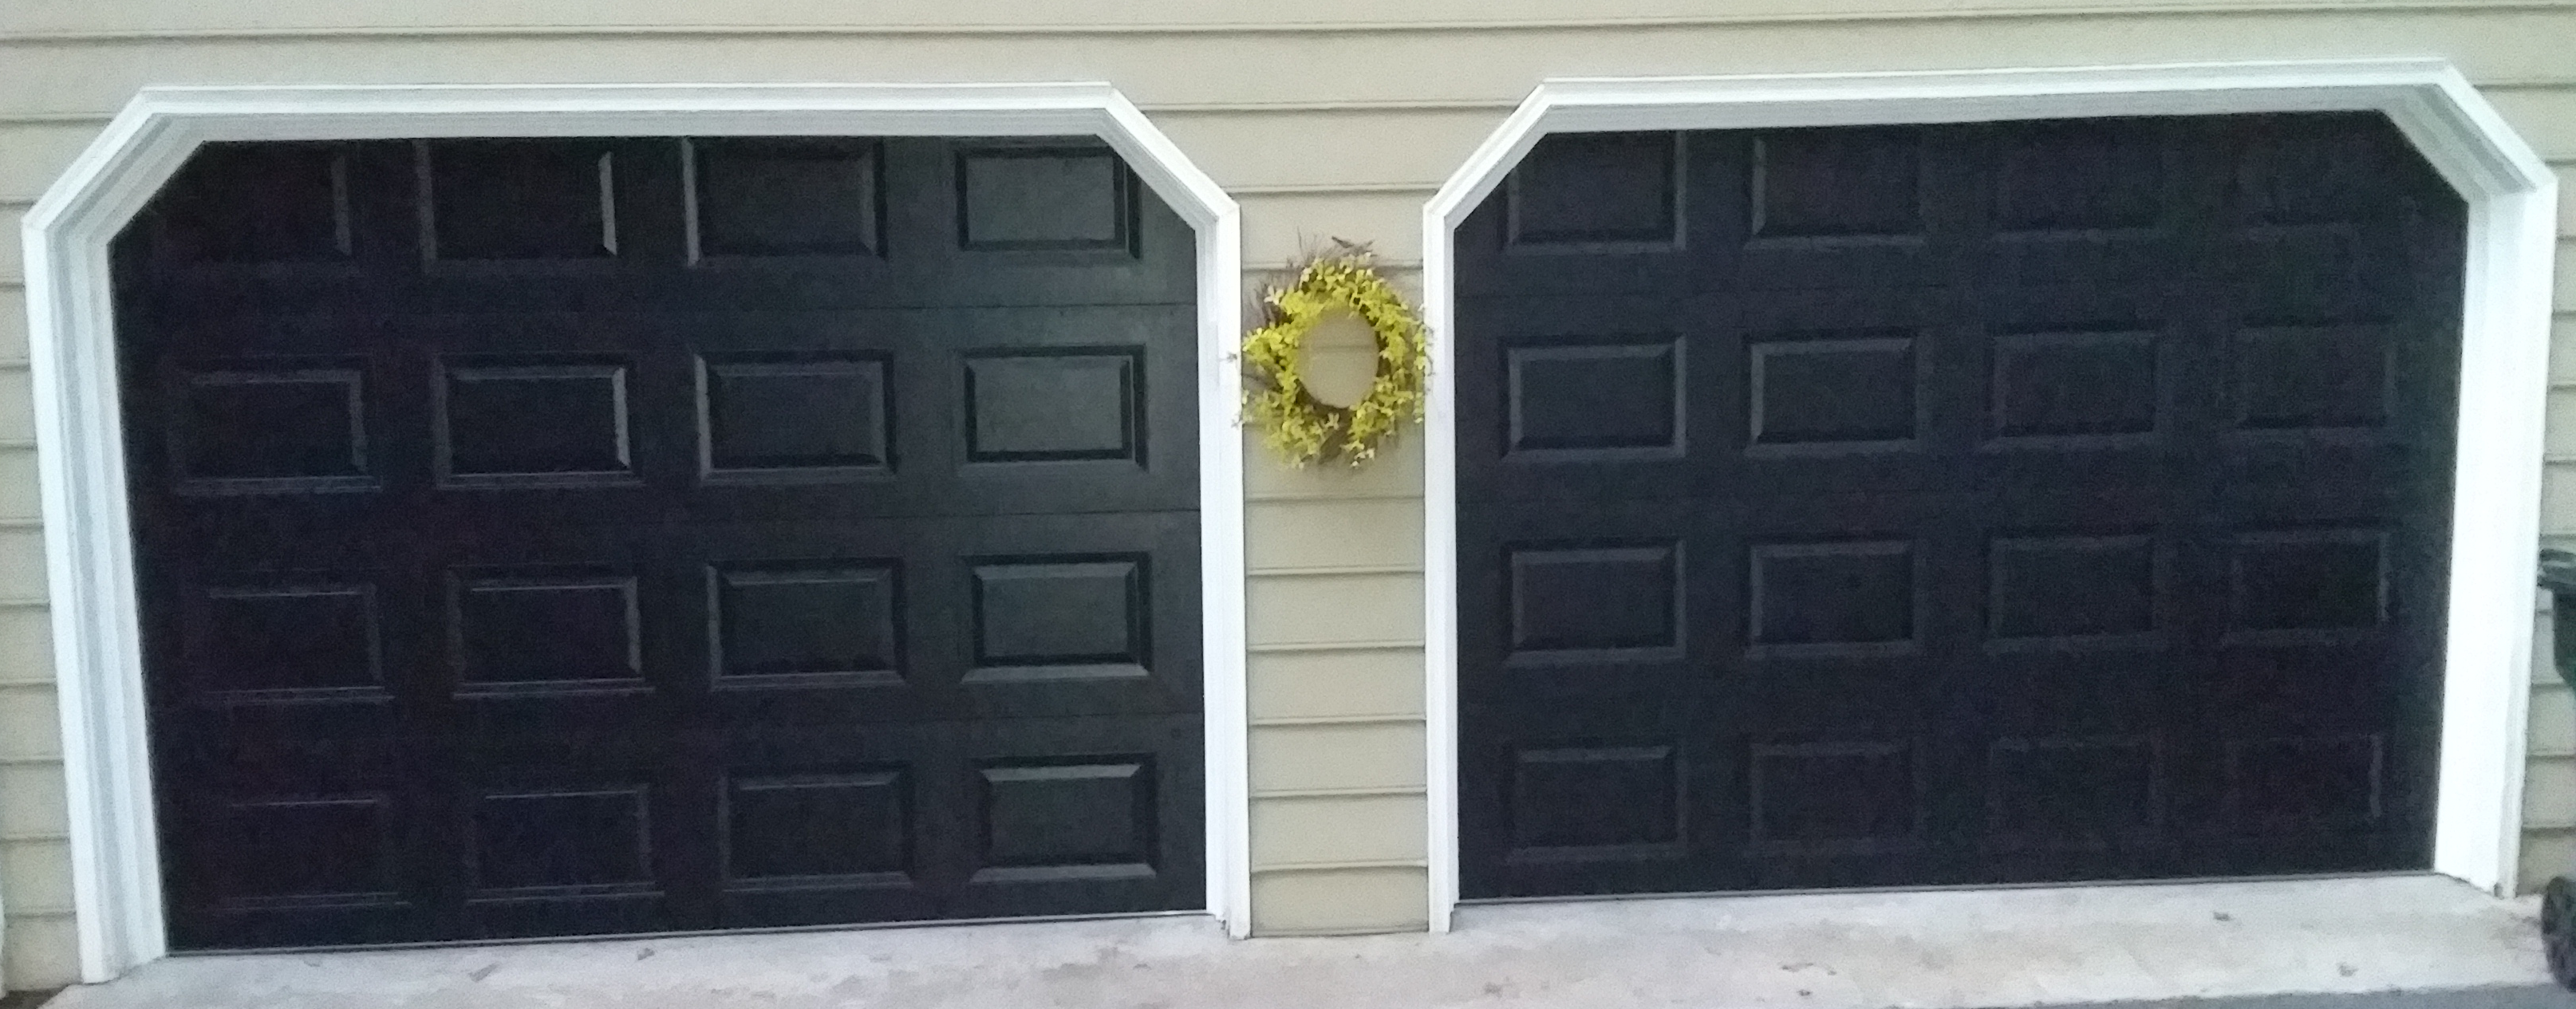 Two 9x7 Model 2216 Black Raised Short Panel Double Steel Garage Doors Installed By The Richmond Store Team Garage Doors Double Garage Door Door Installation